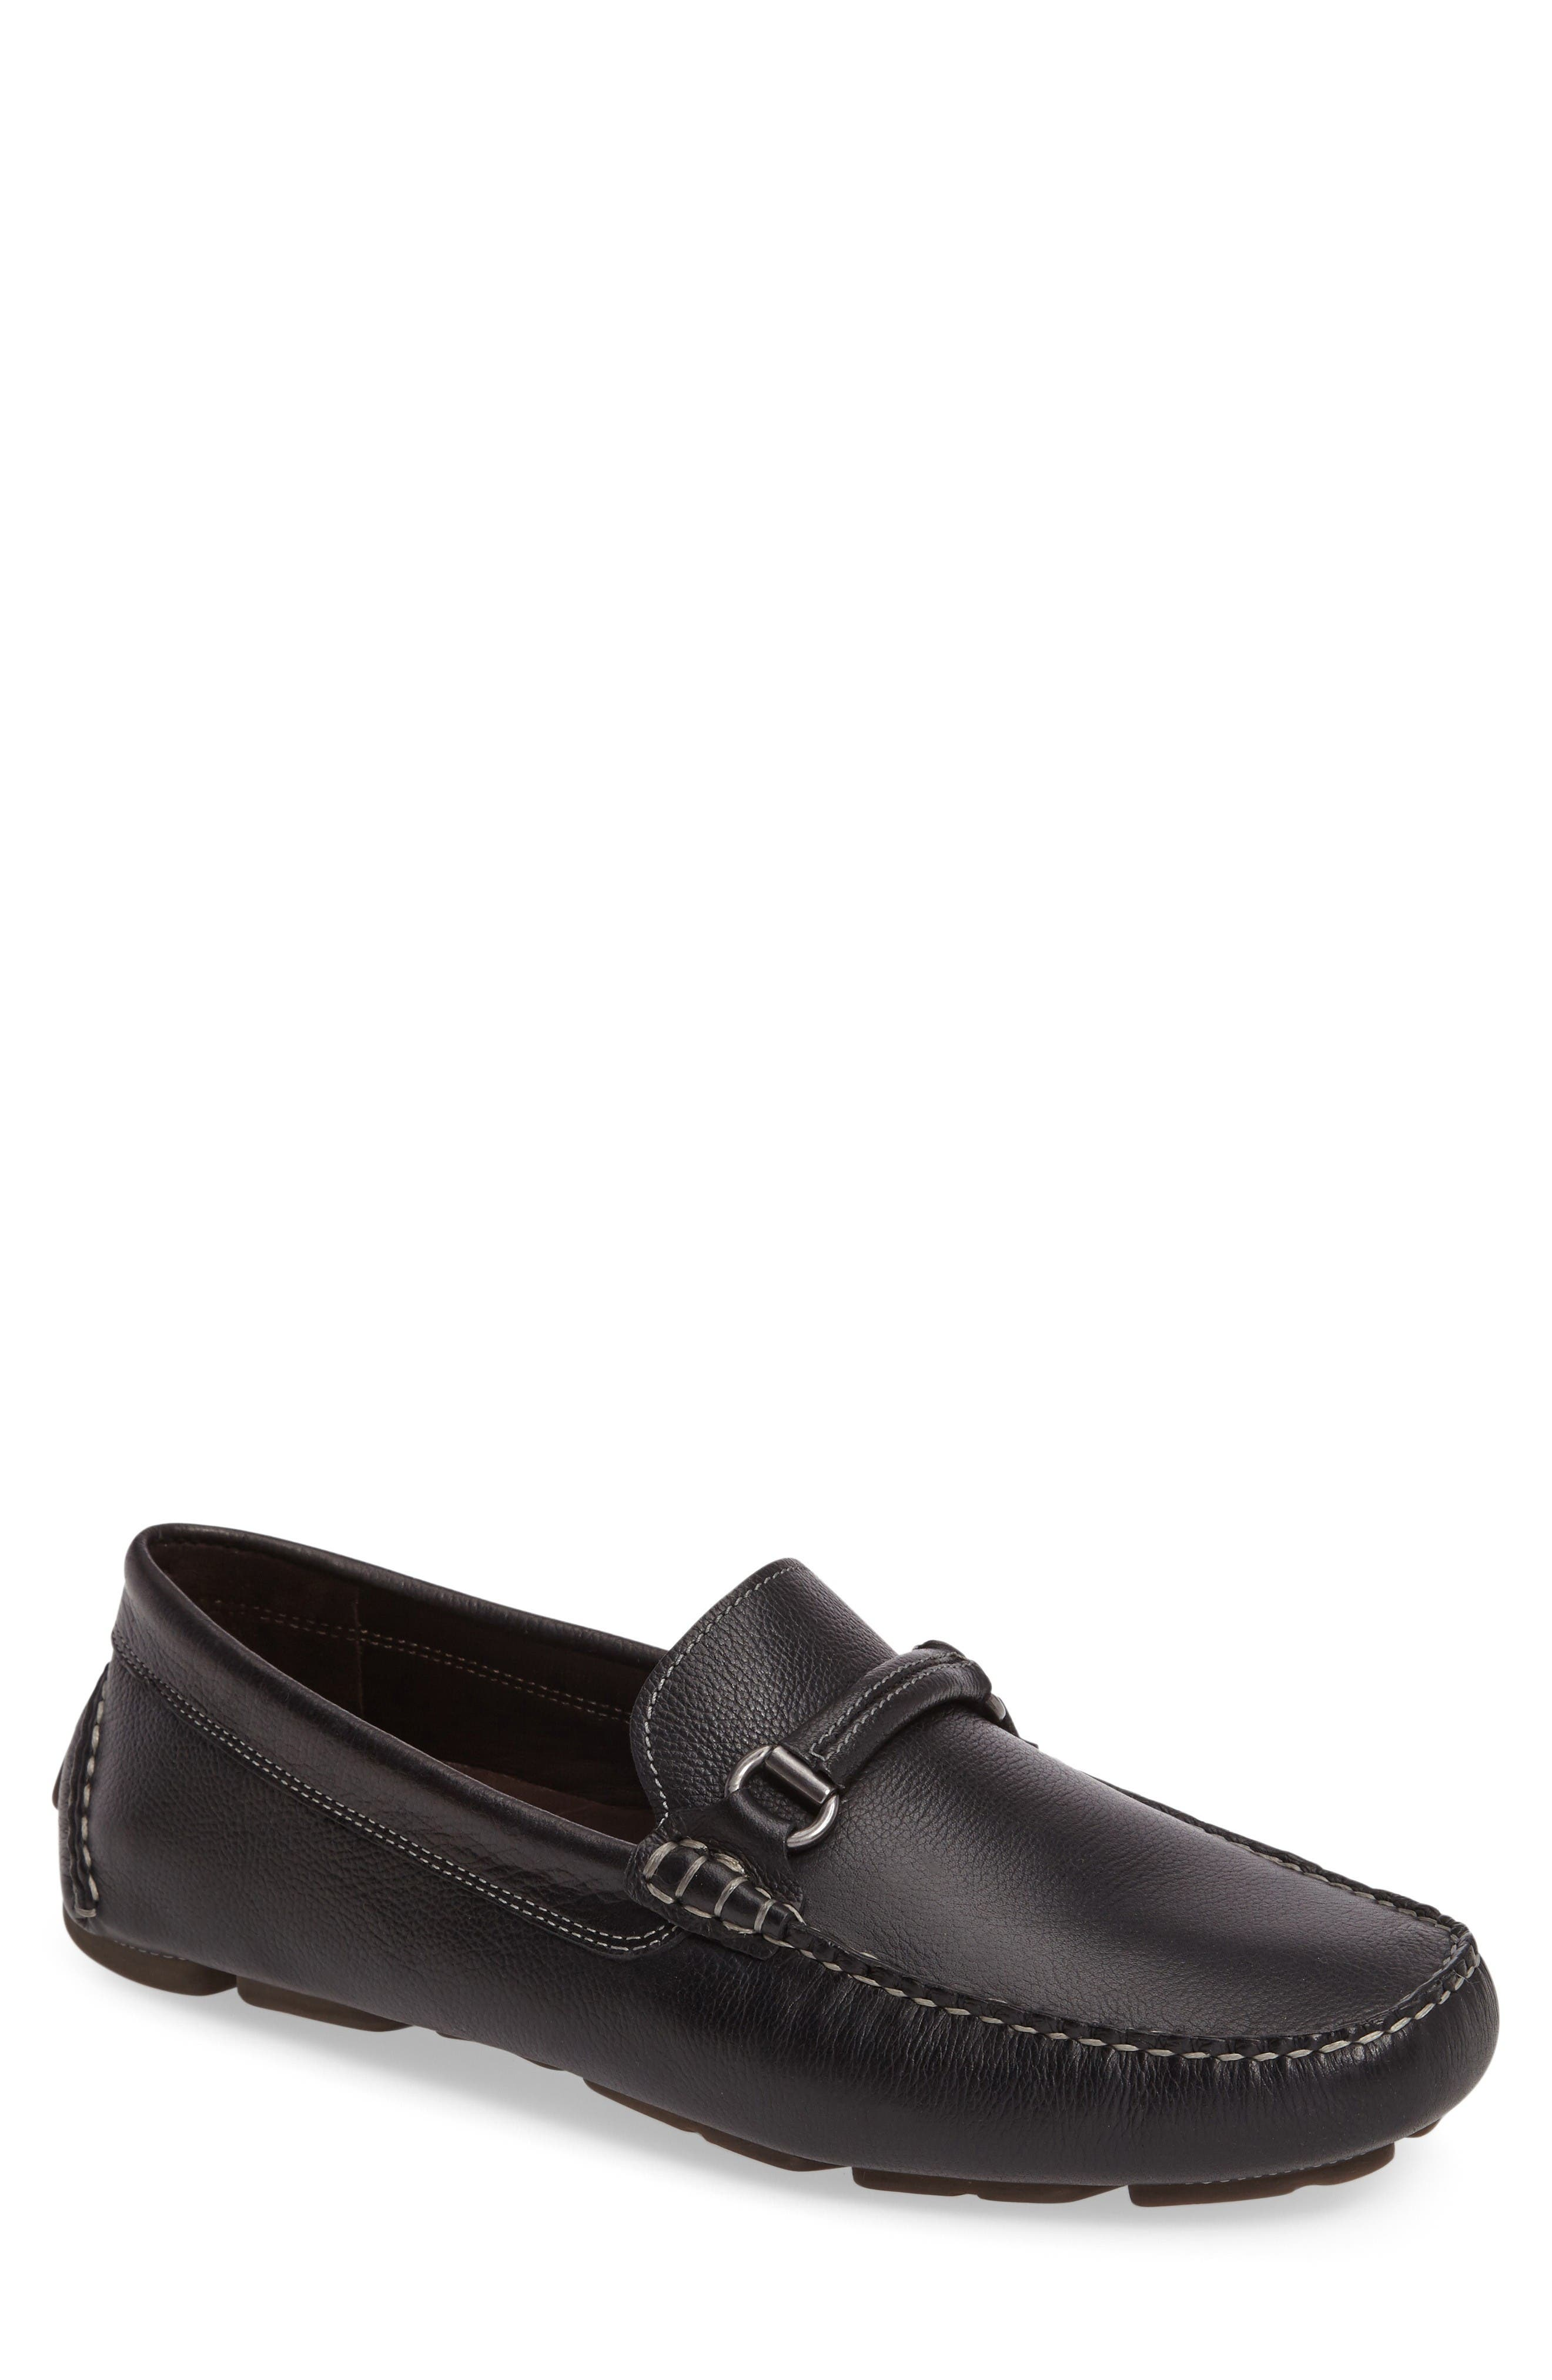 Gibson Bit Driving Loafer,                         Main,                         color, Black Leather